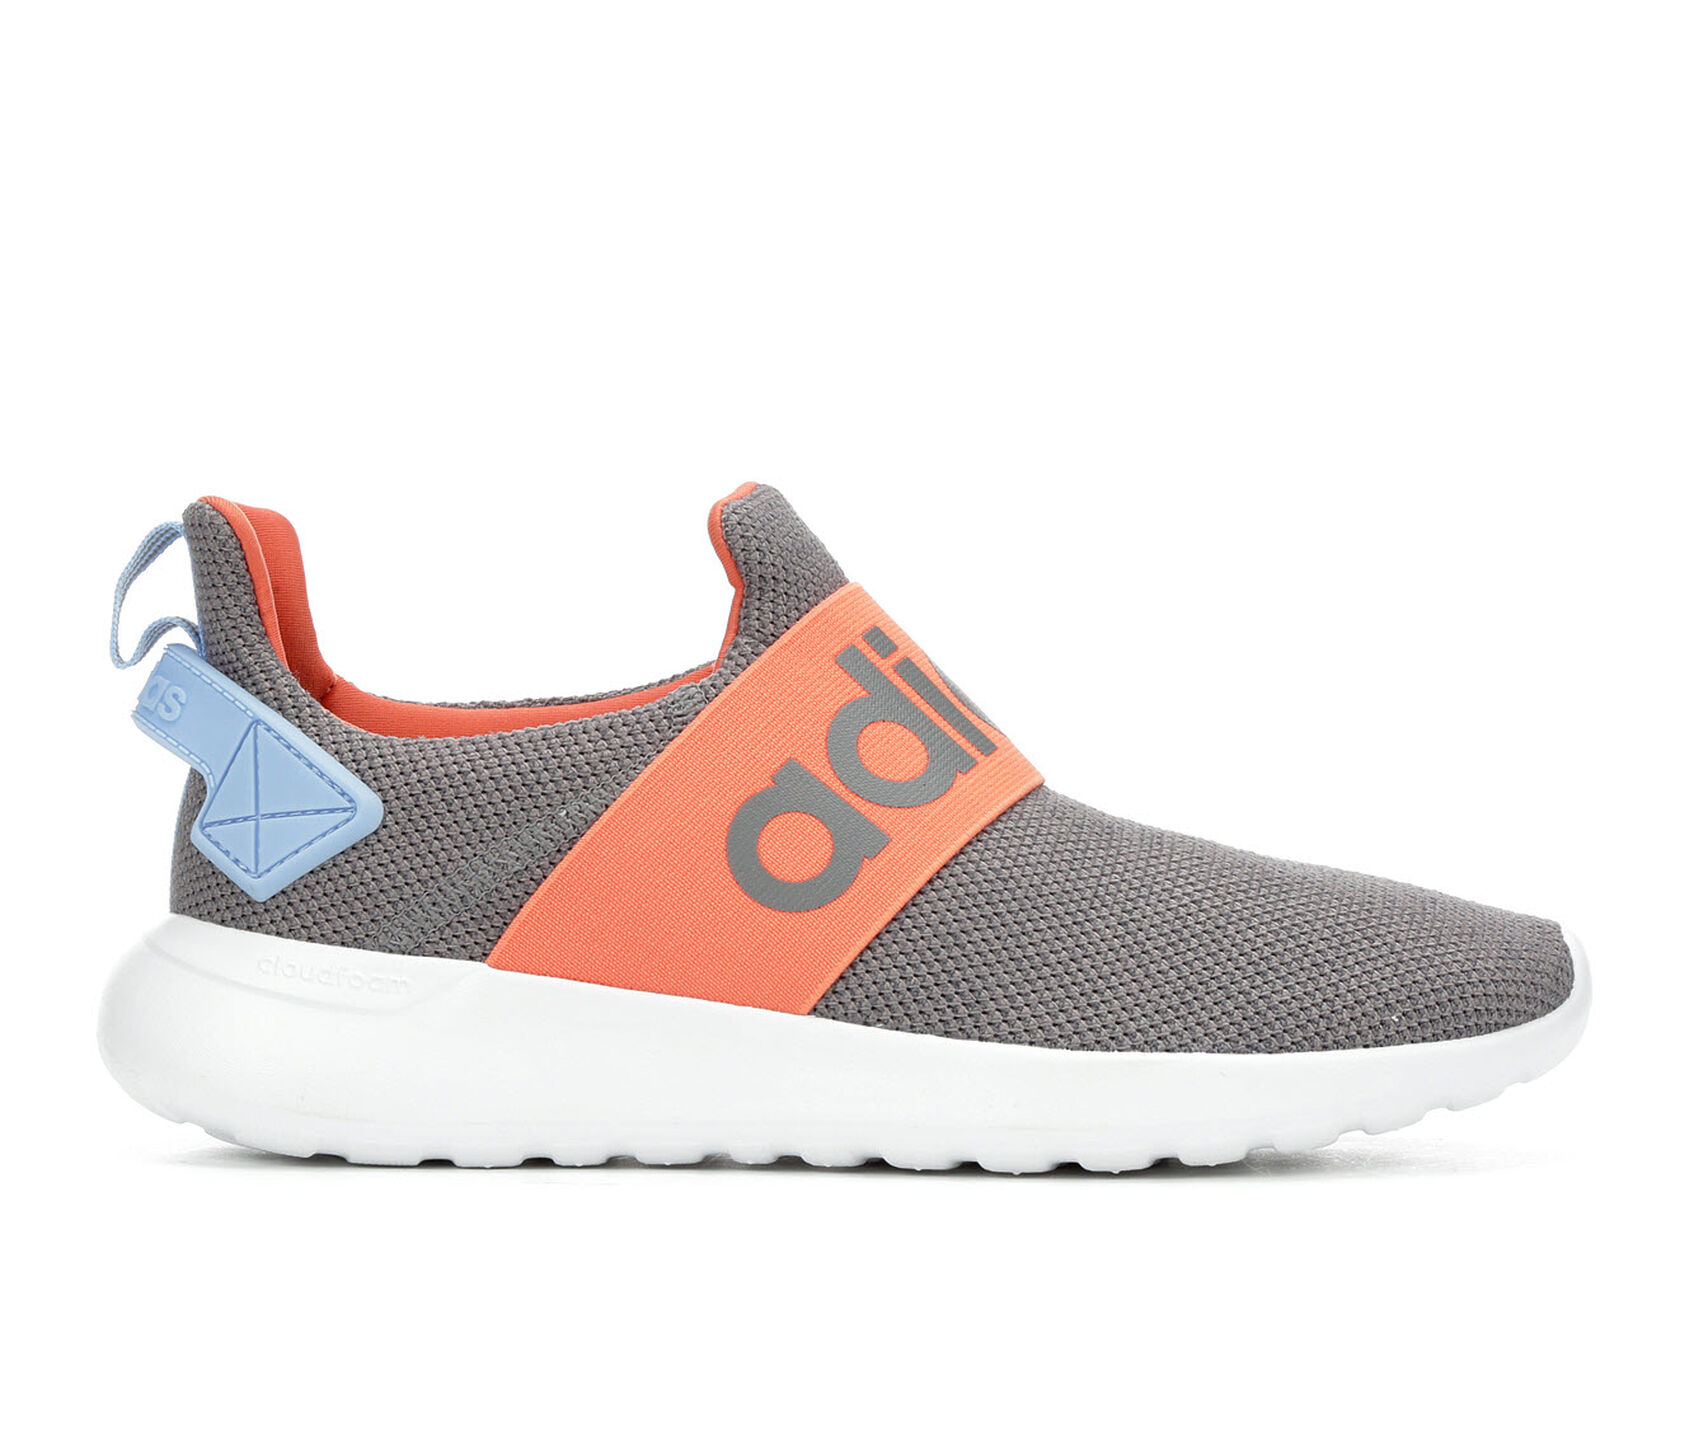 reputable site 58f49 90679 Women's Adidas Lite Racer Adapt Slip-On Sneakers